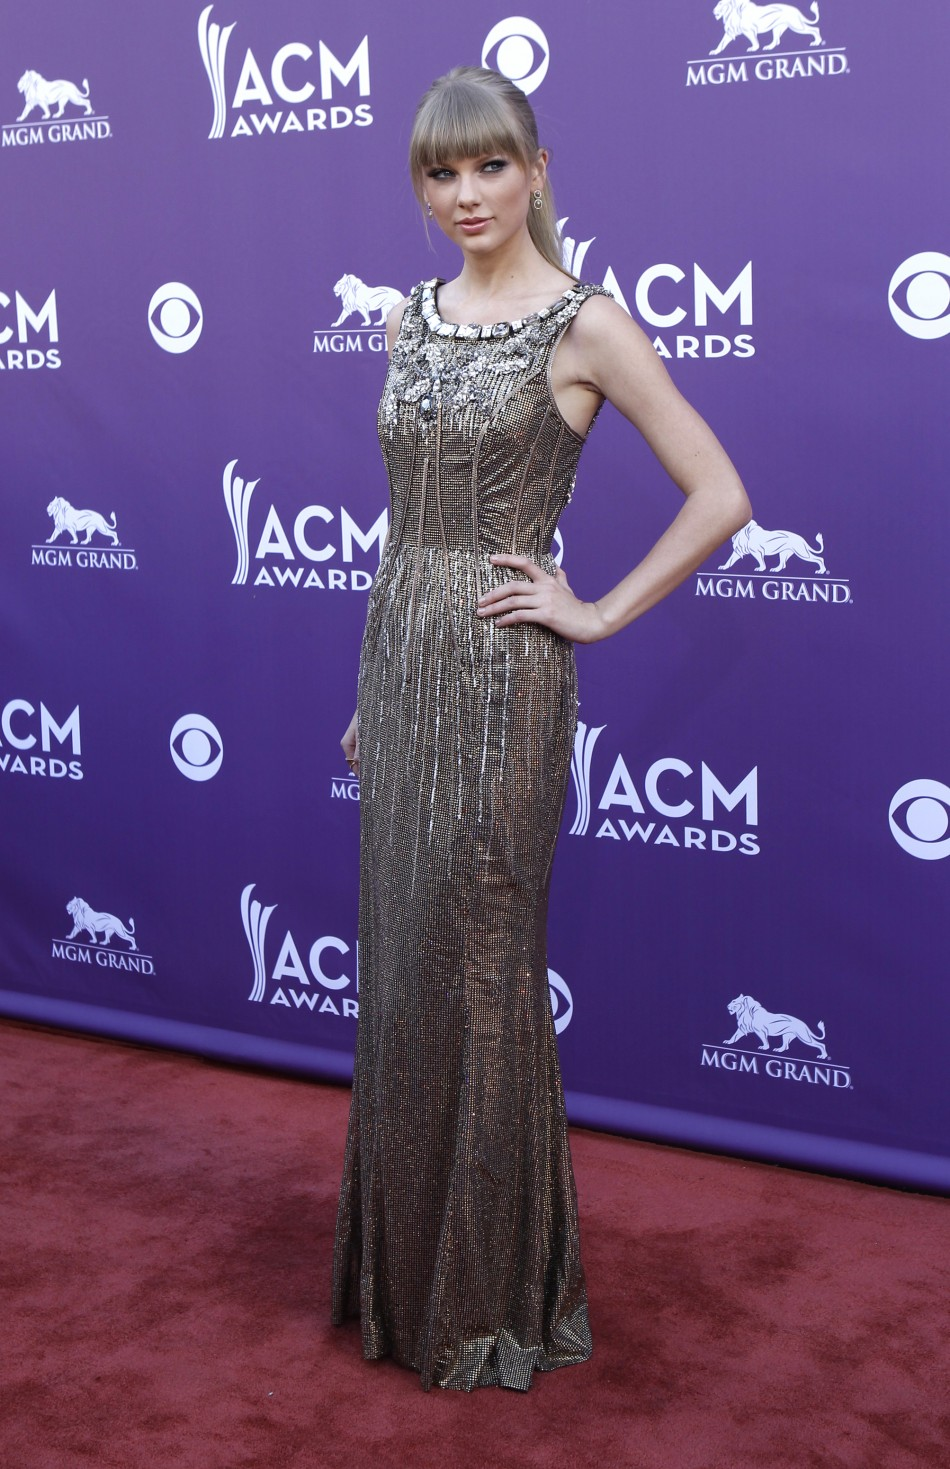 Singer Taylor Swift poses as she arrives at the 48th ACM Awards in Las Vegas, April 7, 2013.